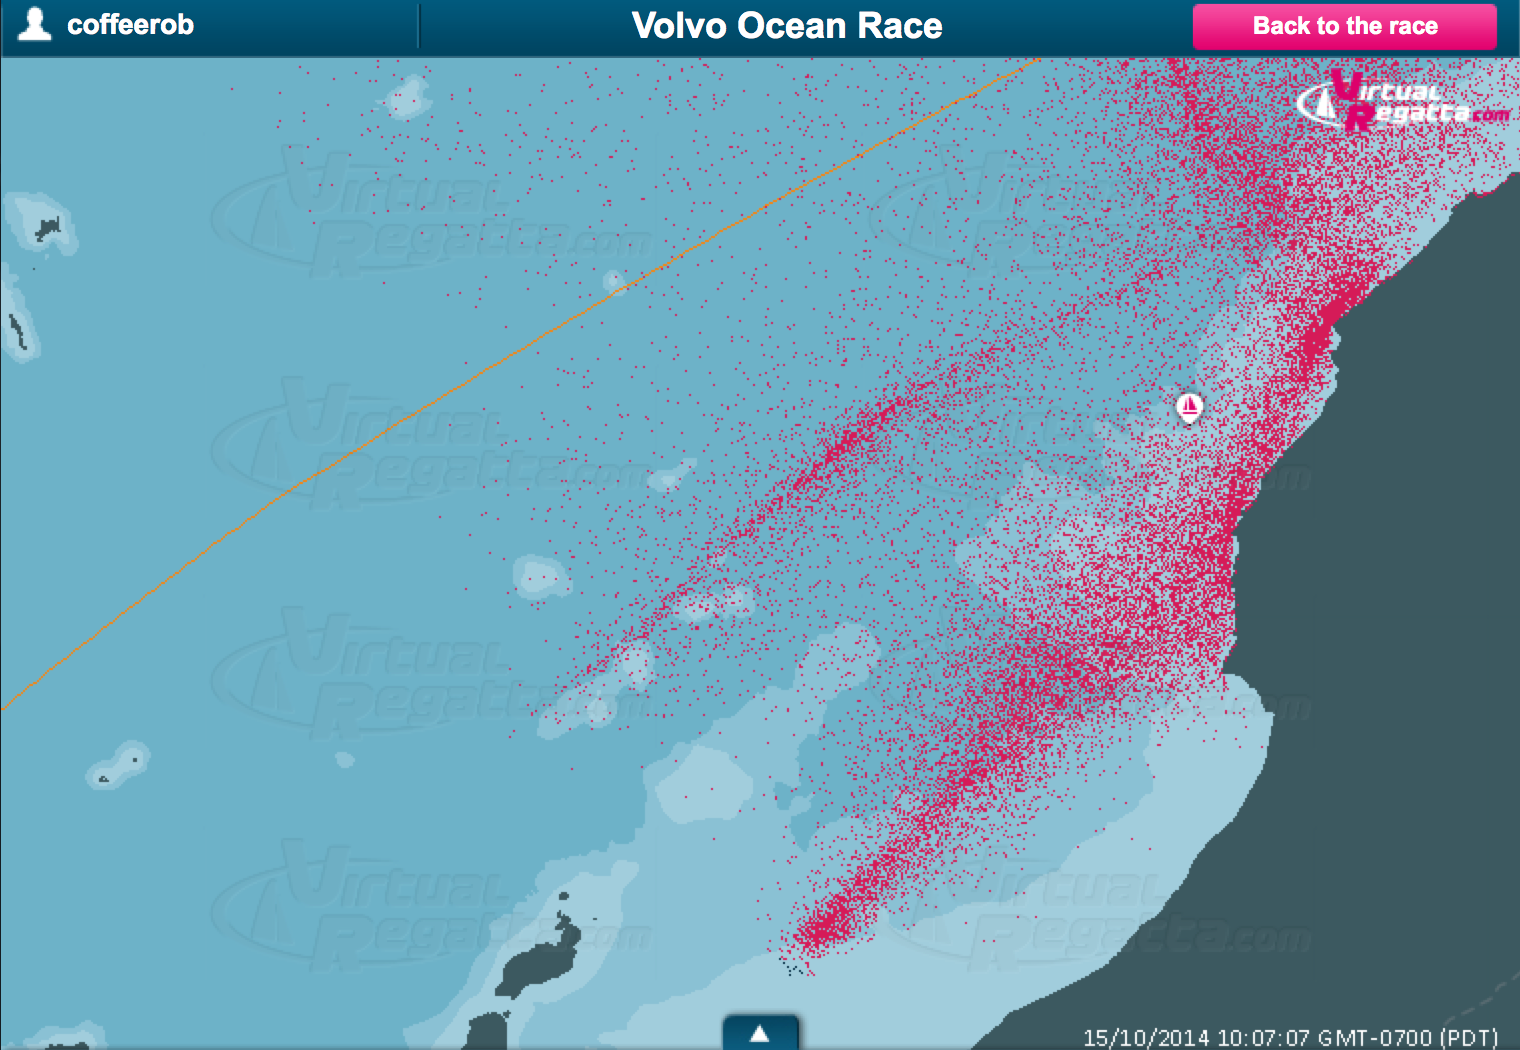 Every pink dot is another player in the Volvo Ocean Race Virtual game. The fleet is splitting the Canaries.